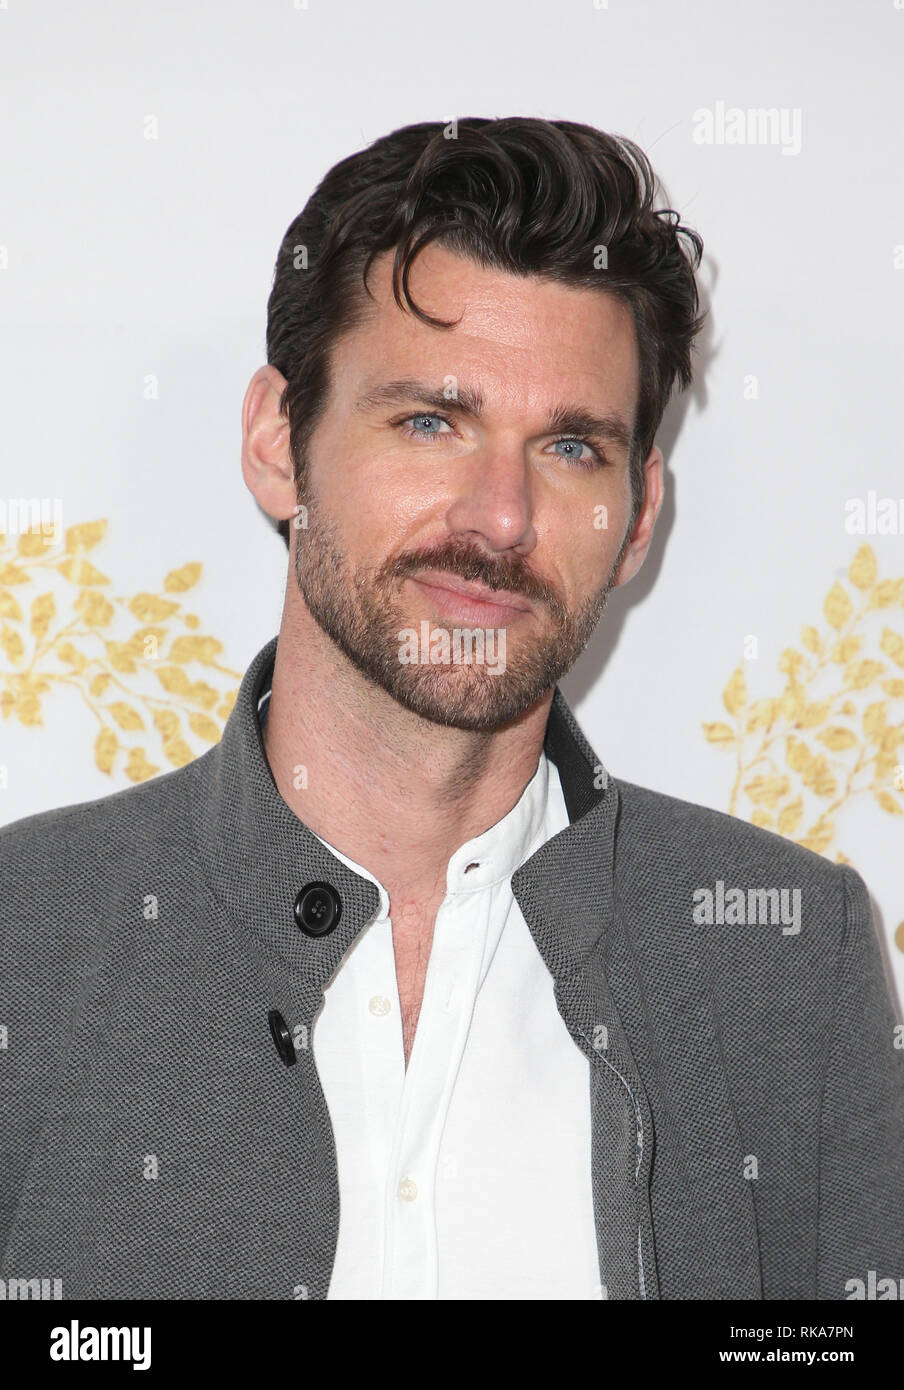 pasadena ca february 9 kevin mcgarry at the hallmark channel and hallmark movies. Black Bedroom Furniture Sets. Home Design Ideas